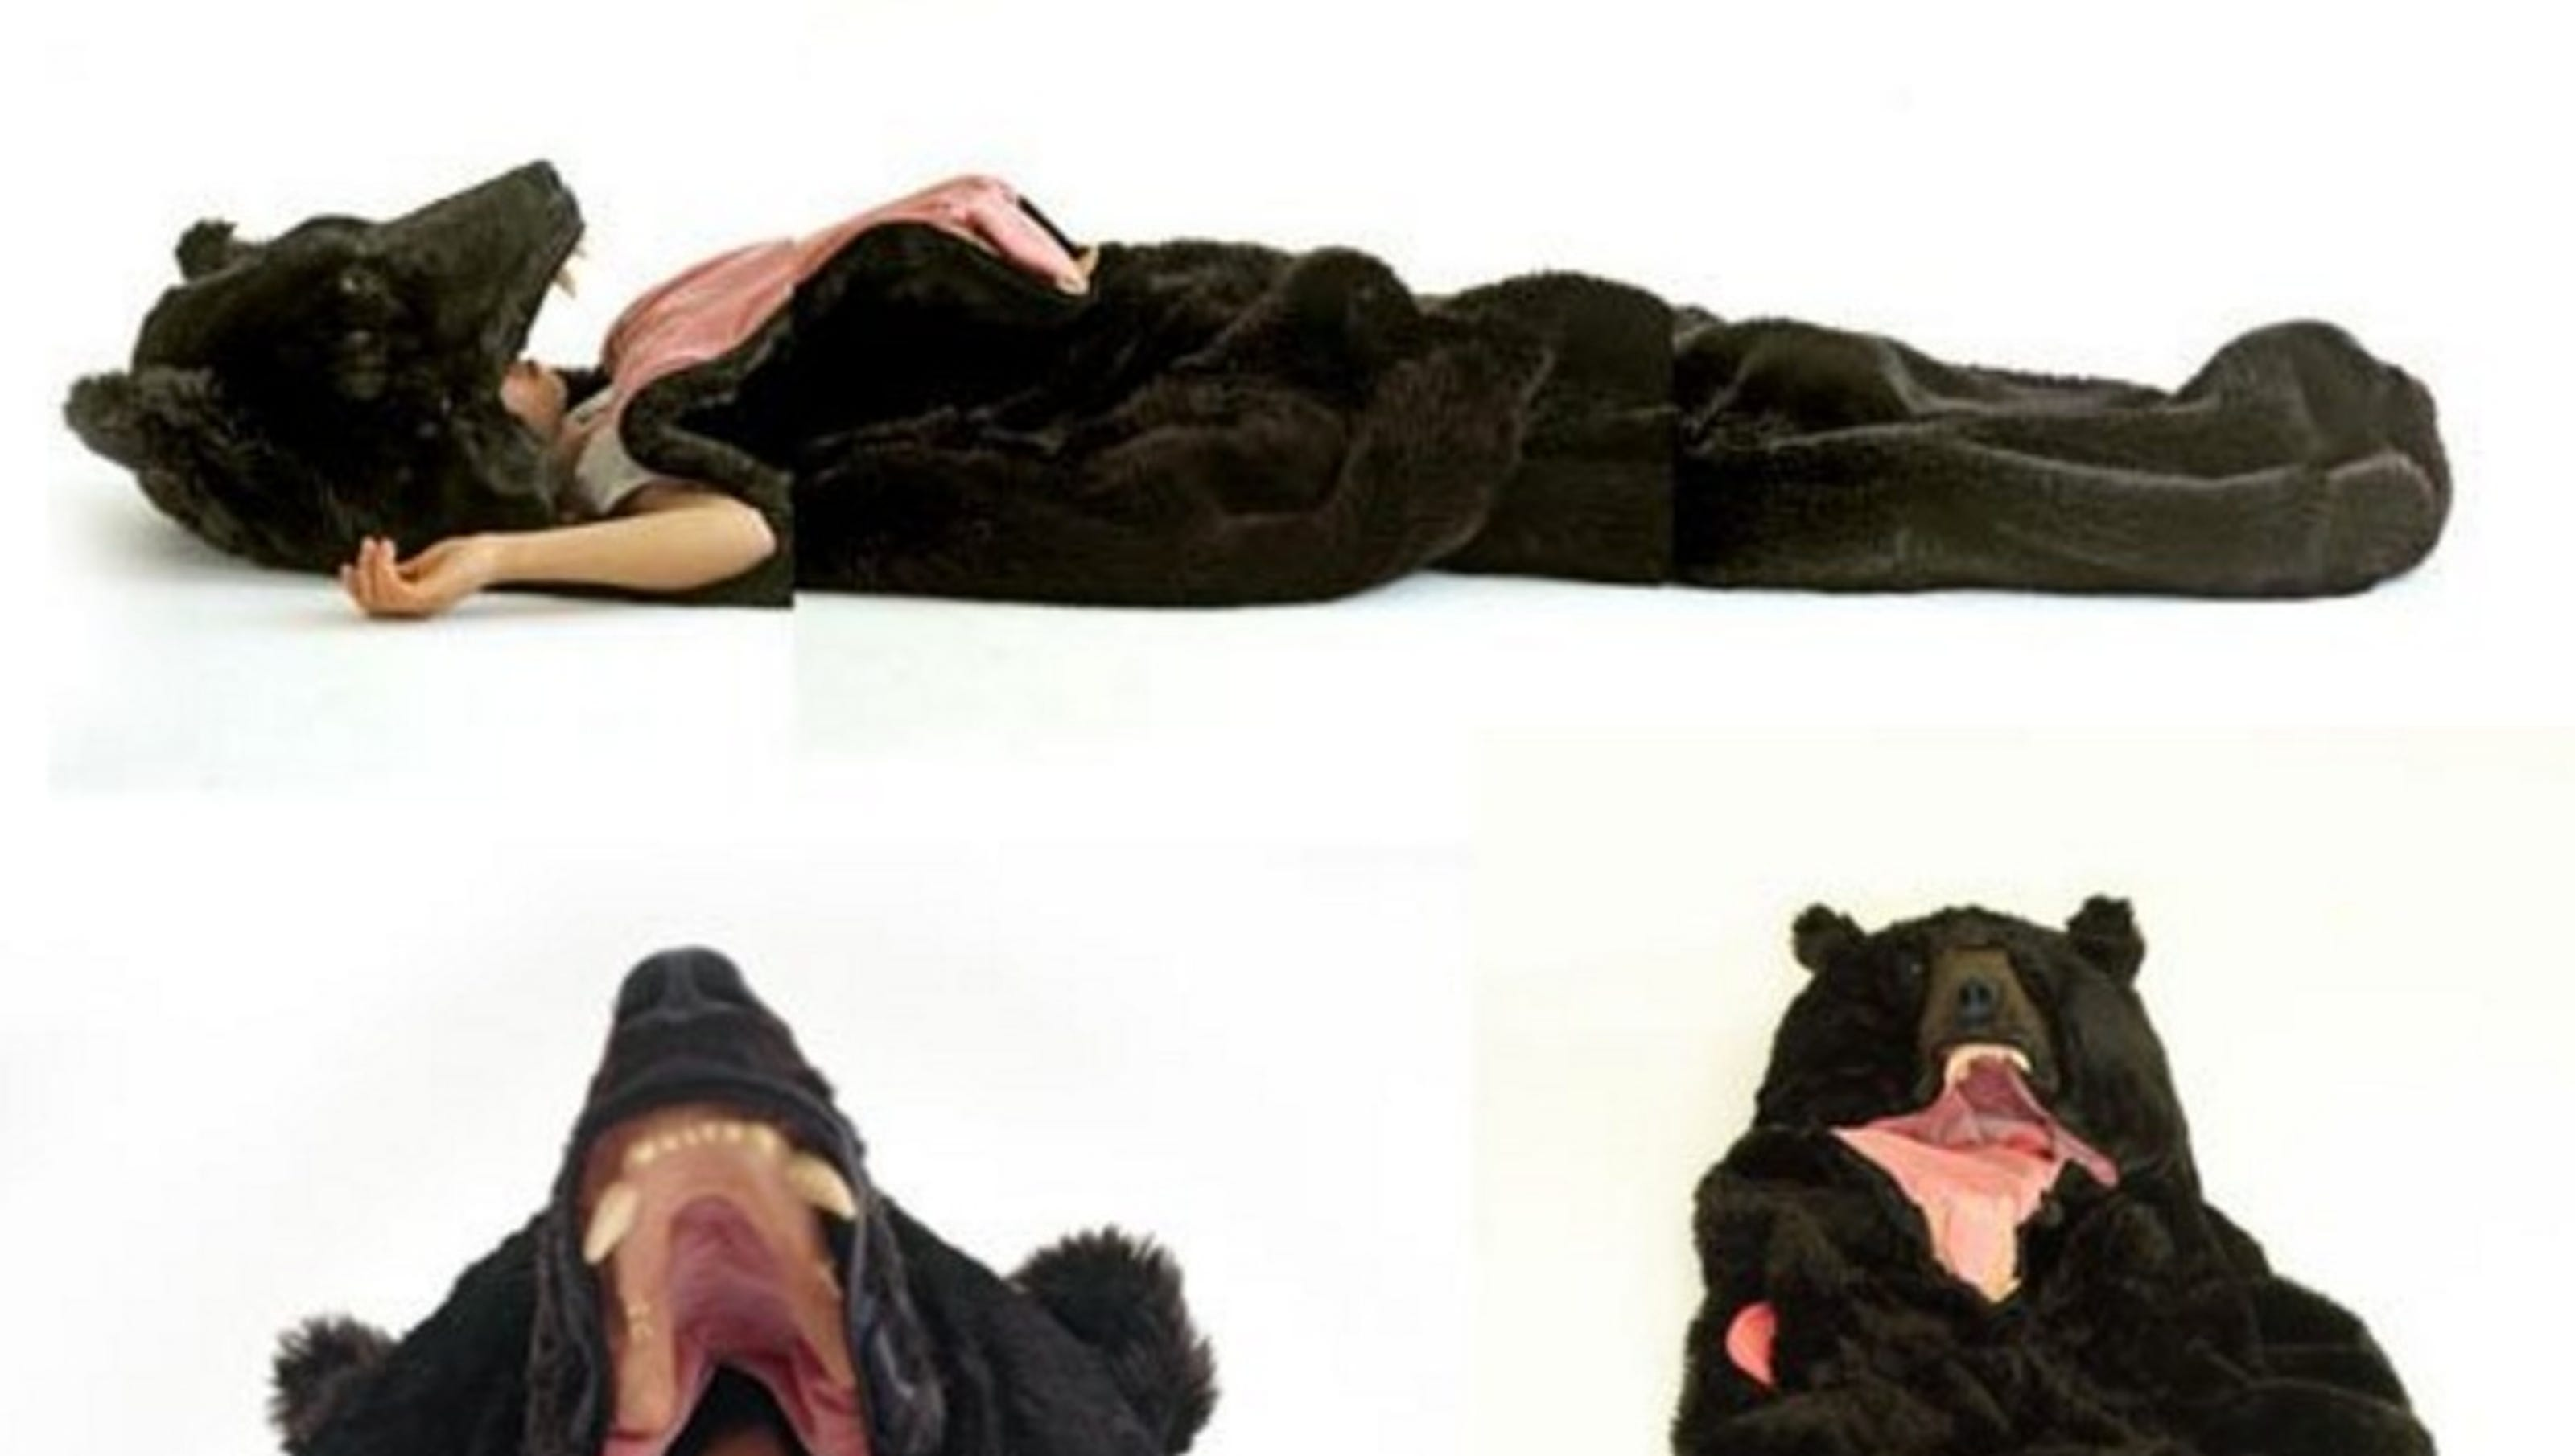 Here's a bear sleeping bag for all your winter hibernation ...